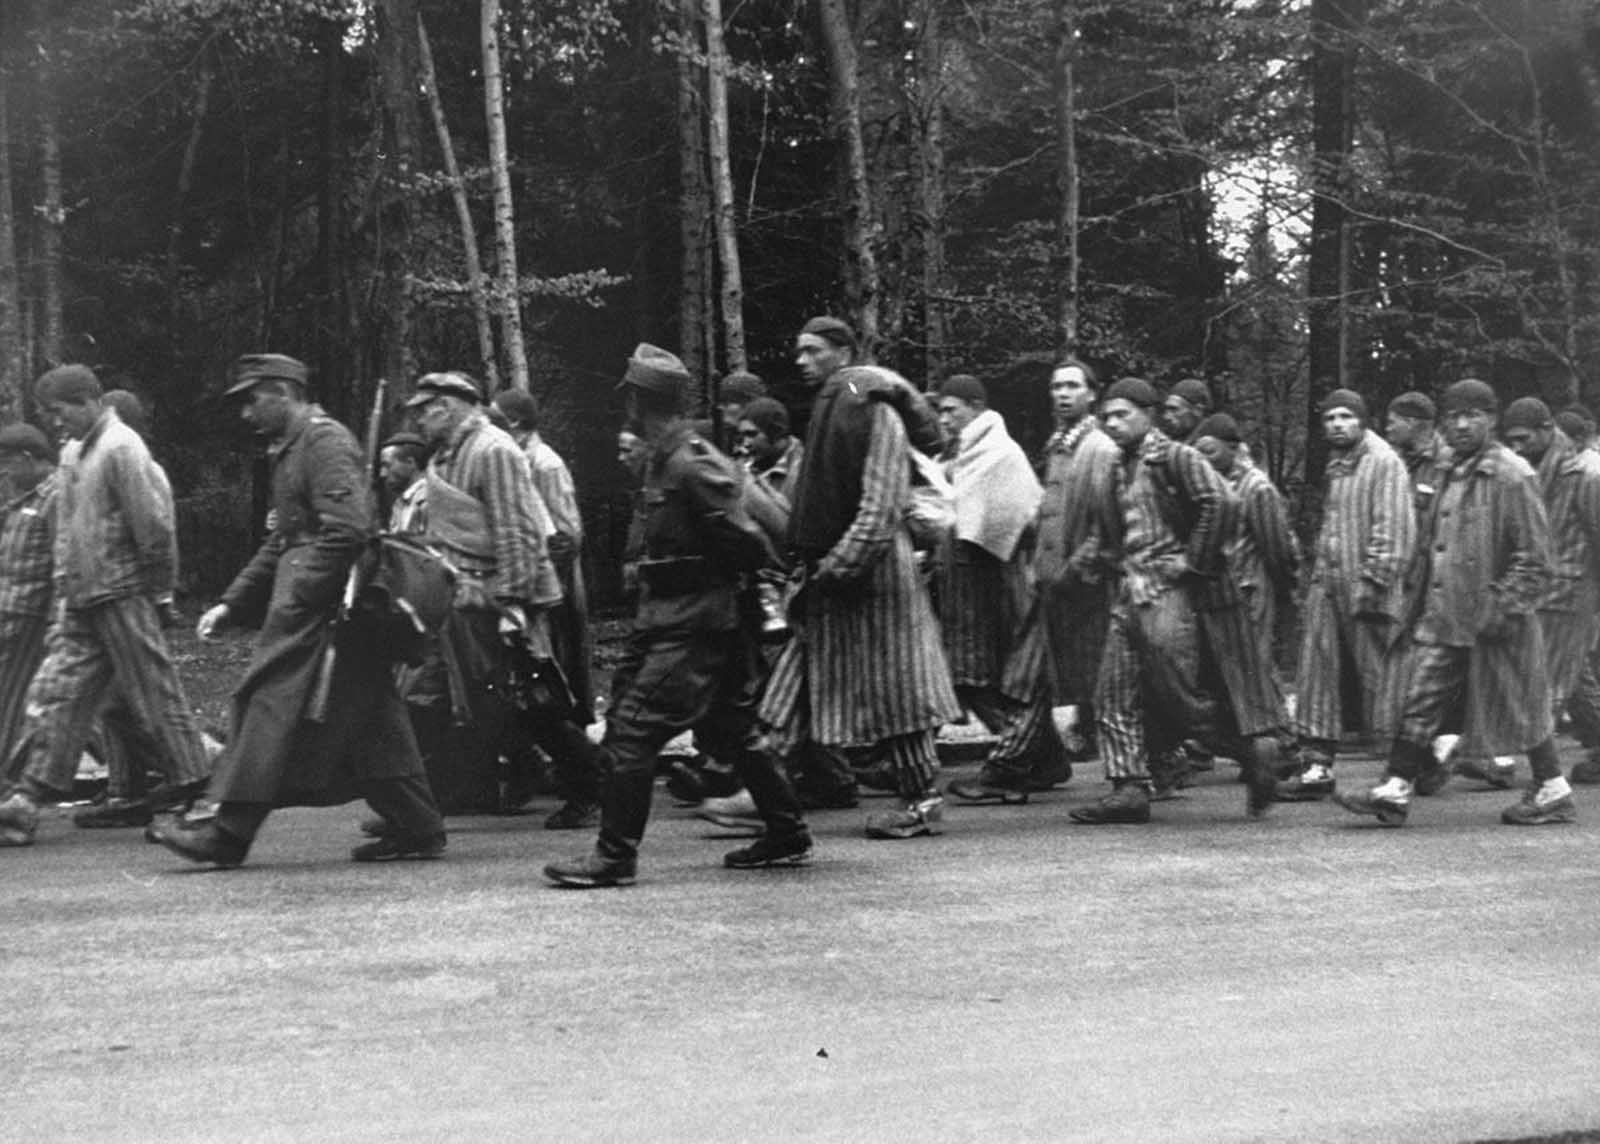 Prisoners on a death march from Dachau move towards the south along the Noerdliche Muenchner Street in Gruenwald, Germany, on April 29, 1945. Many thousands of prisoners were marched forcibly from outlying prison camps to camps deeper inside Germany as Allied forces closed in. Thousands died along the way, anyone unable to keep up was executed on the spot. Pictured, fourth from the right, is Dimitry Gorky who was born on August 19, 1920 in Blagoslovskoe, Russia to a family of peasant farmers. During World War II Dmitry was imprisoned in Dachau for 22 months. The reason for his imprisonment is not known. Photo released by the U.S. Holocaust Memorial Museum